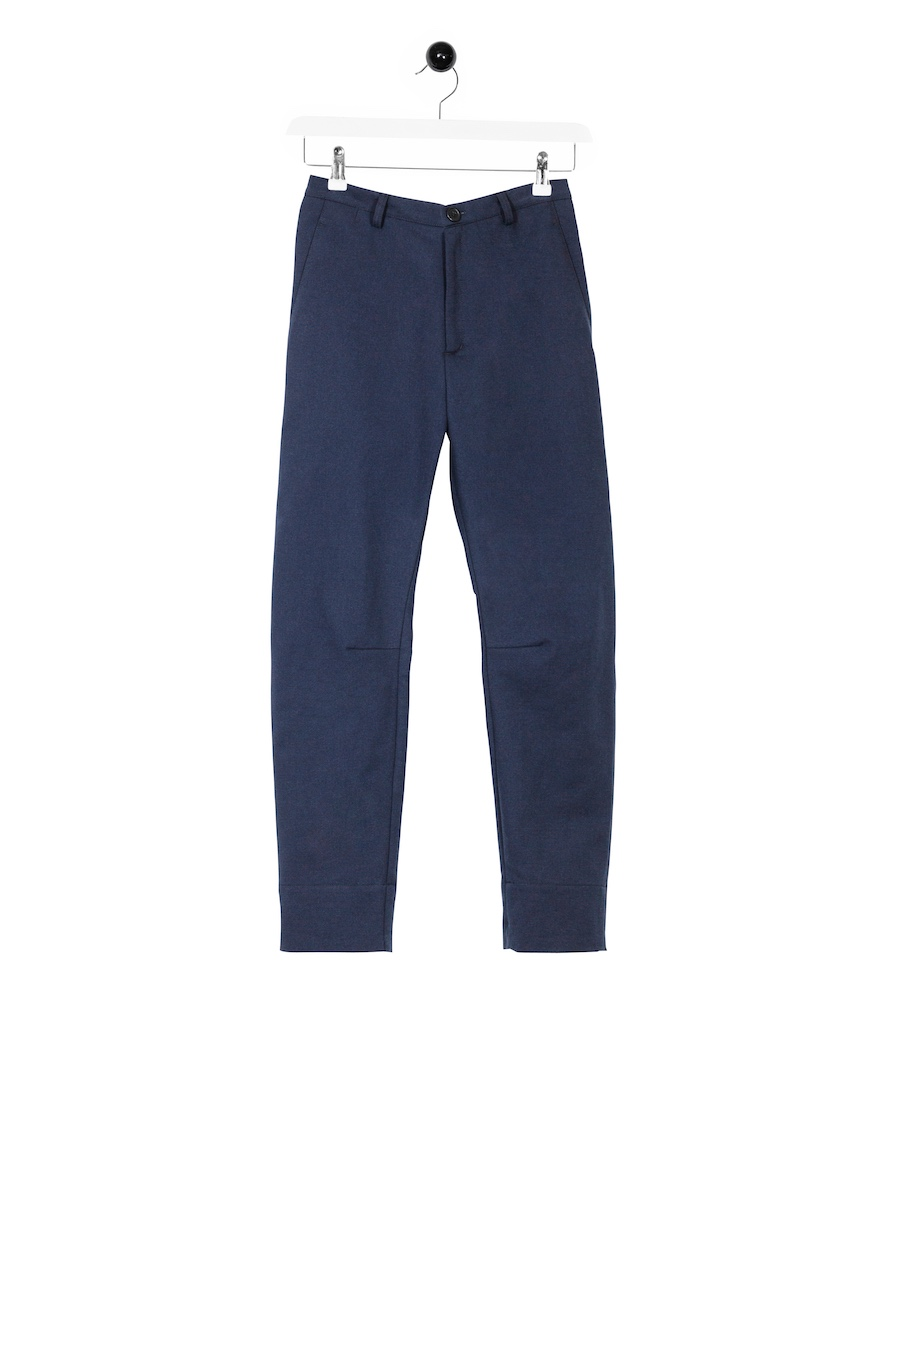 St Ninians Trousers